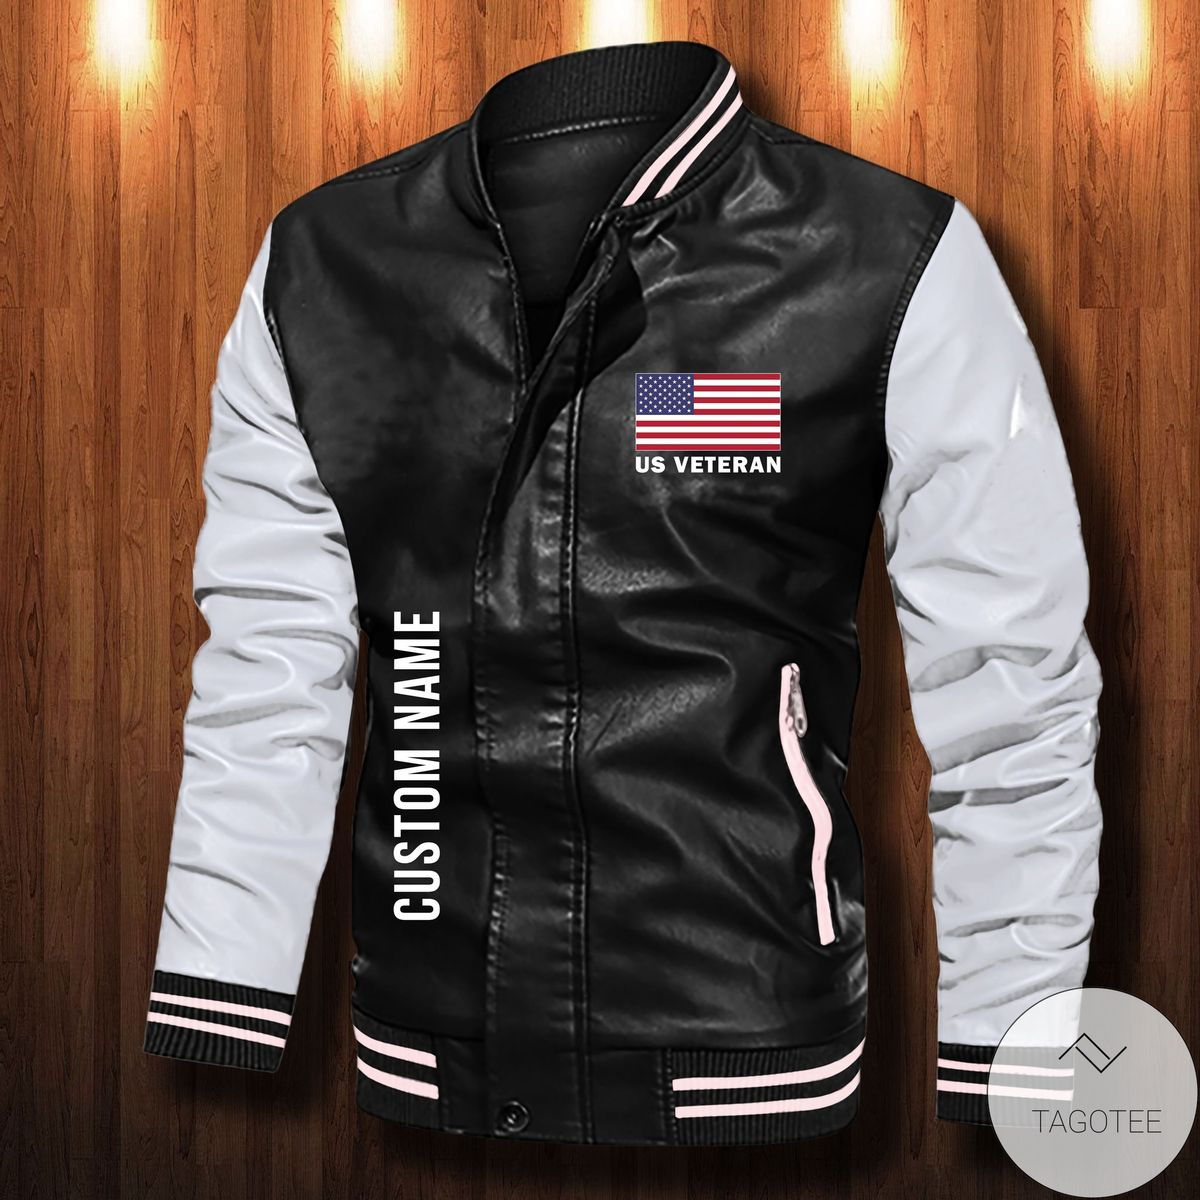 Very Good Quality Personalized America's True Form Of Freedom Leather Bomber Jacket